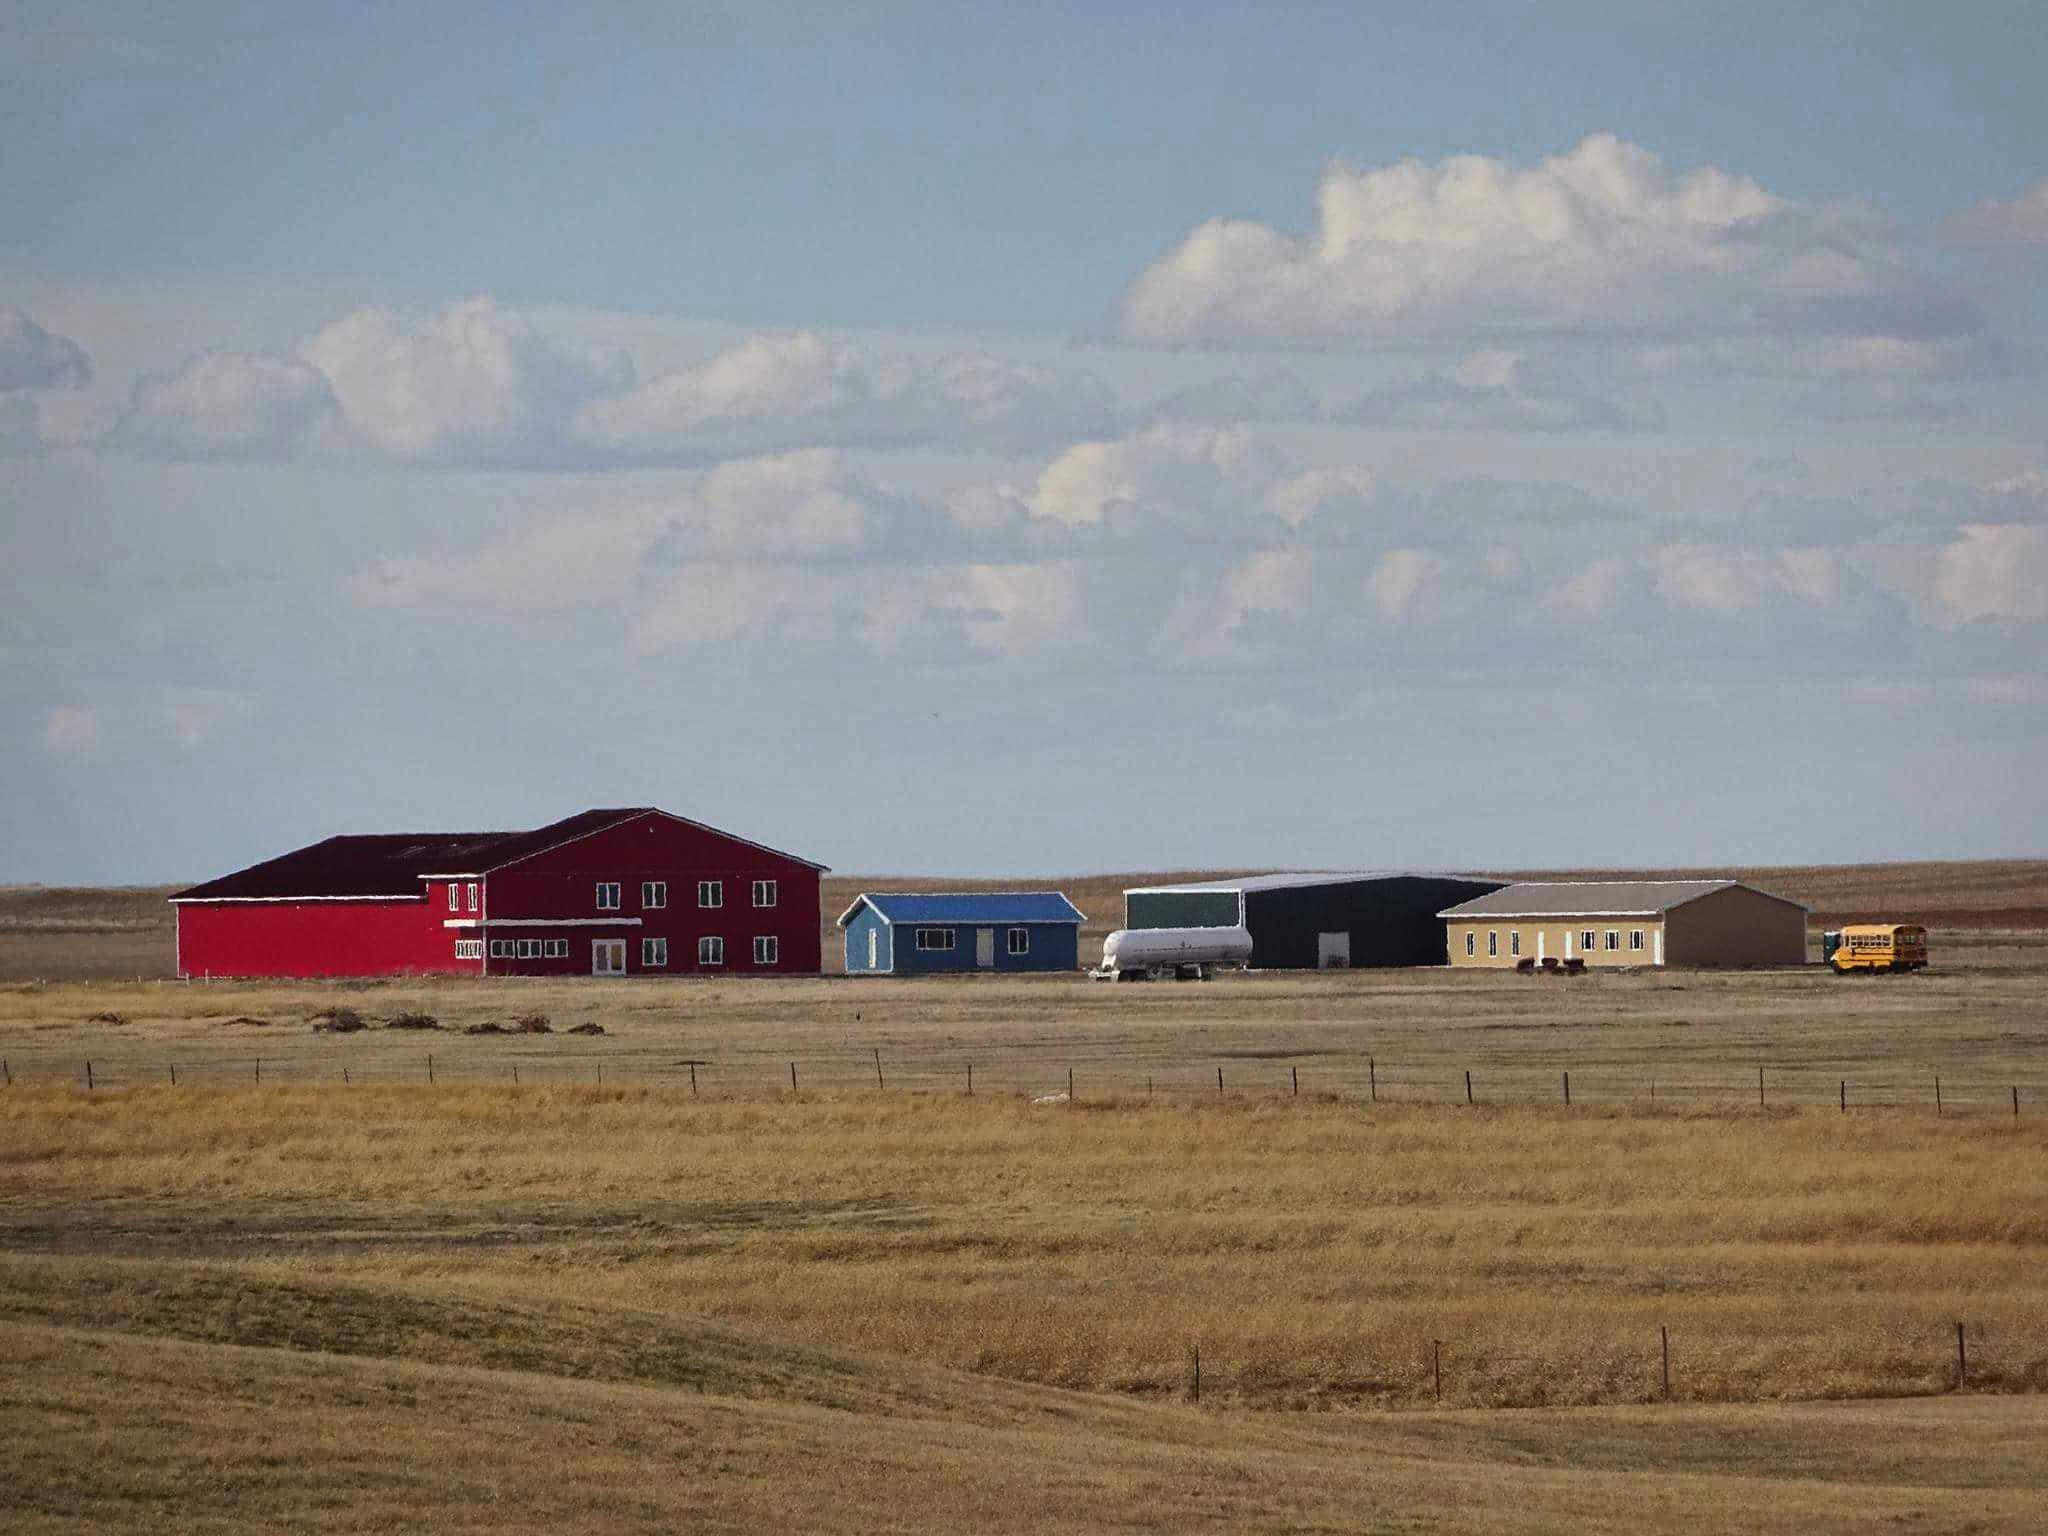 Oglala Sioux Tribe responds to allegations in massive bond scam